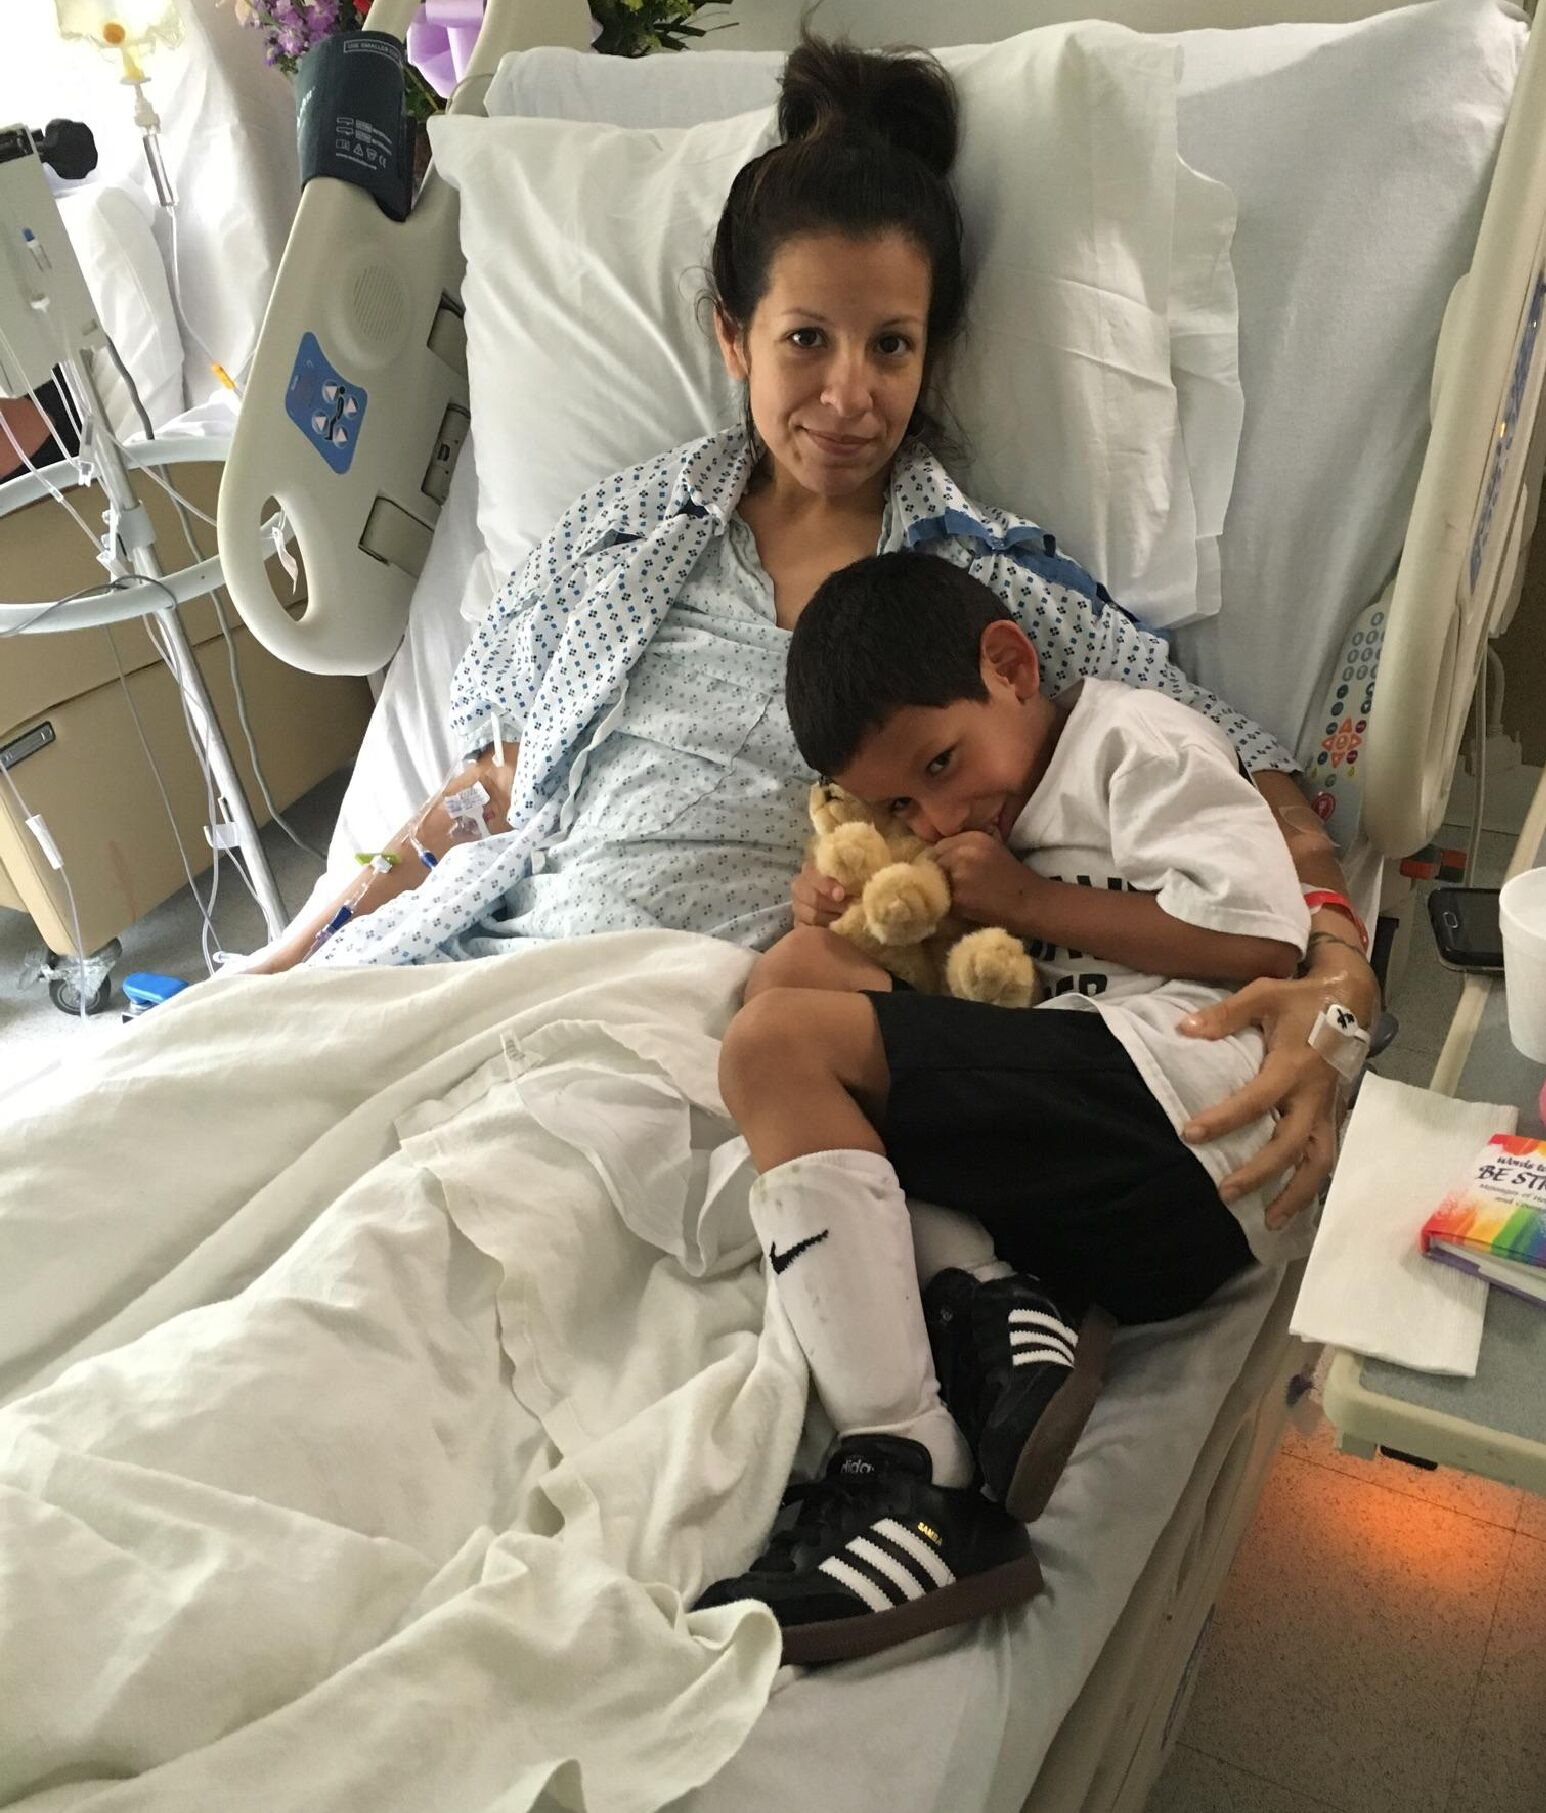 Mother recovering from colon cancer surgery in hospital bed with son